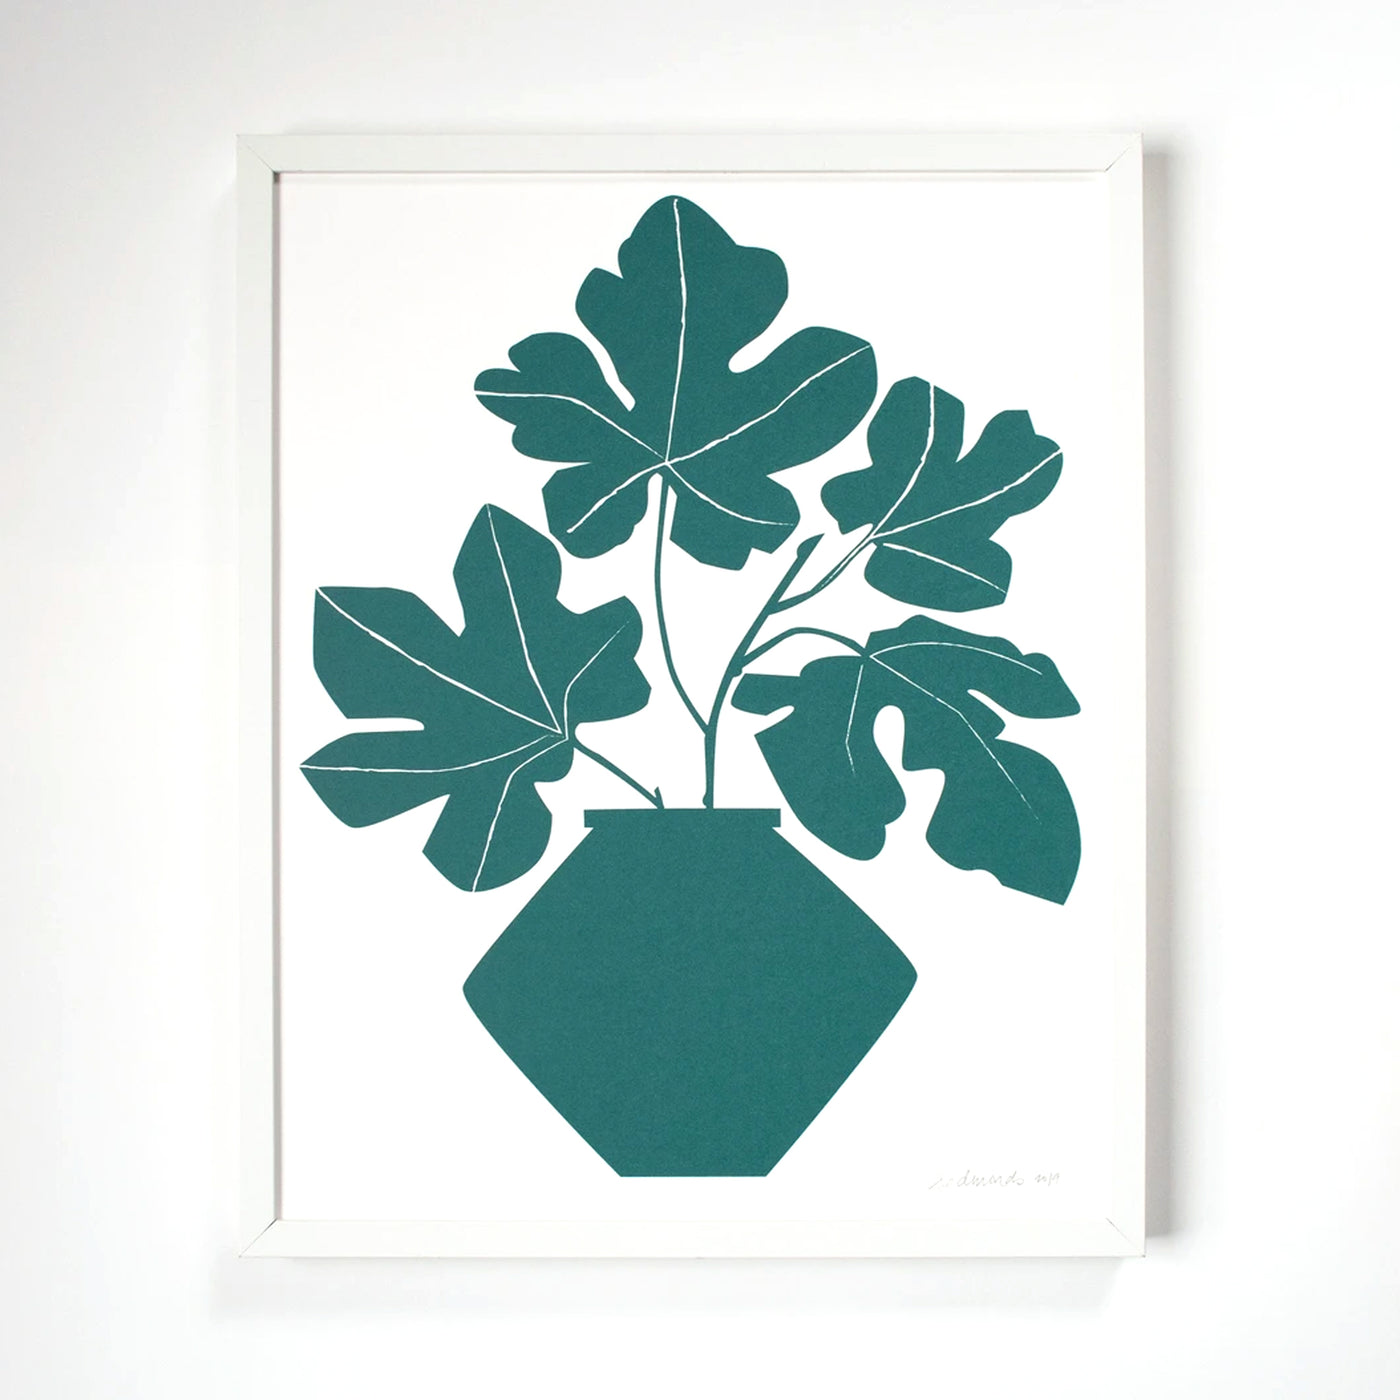 Screenprint of a few stems of deep teal green Fig leaves in a modernist vase by Banquet